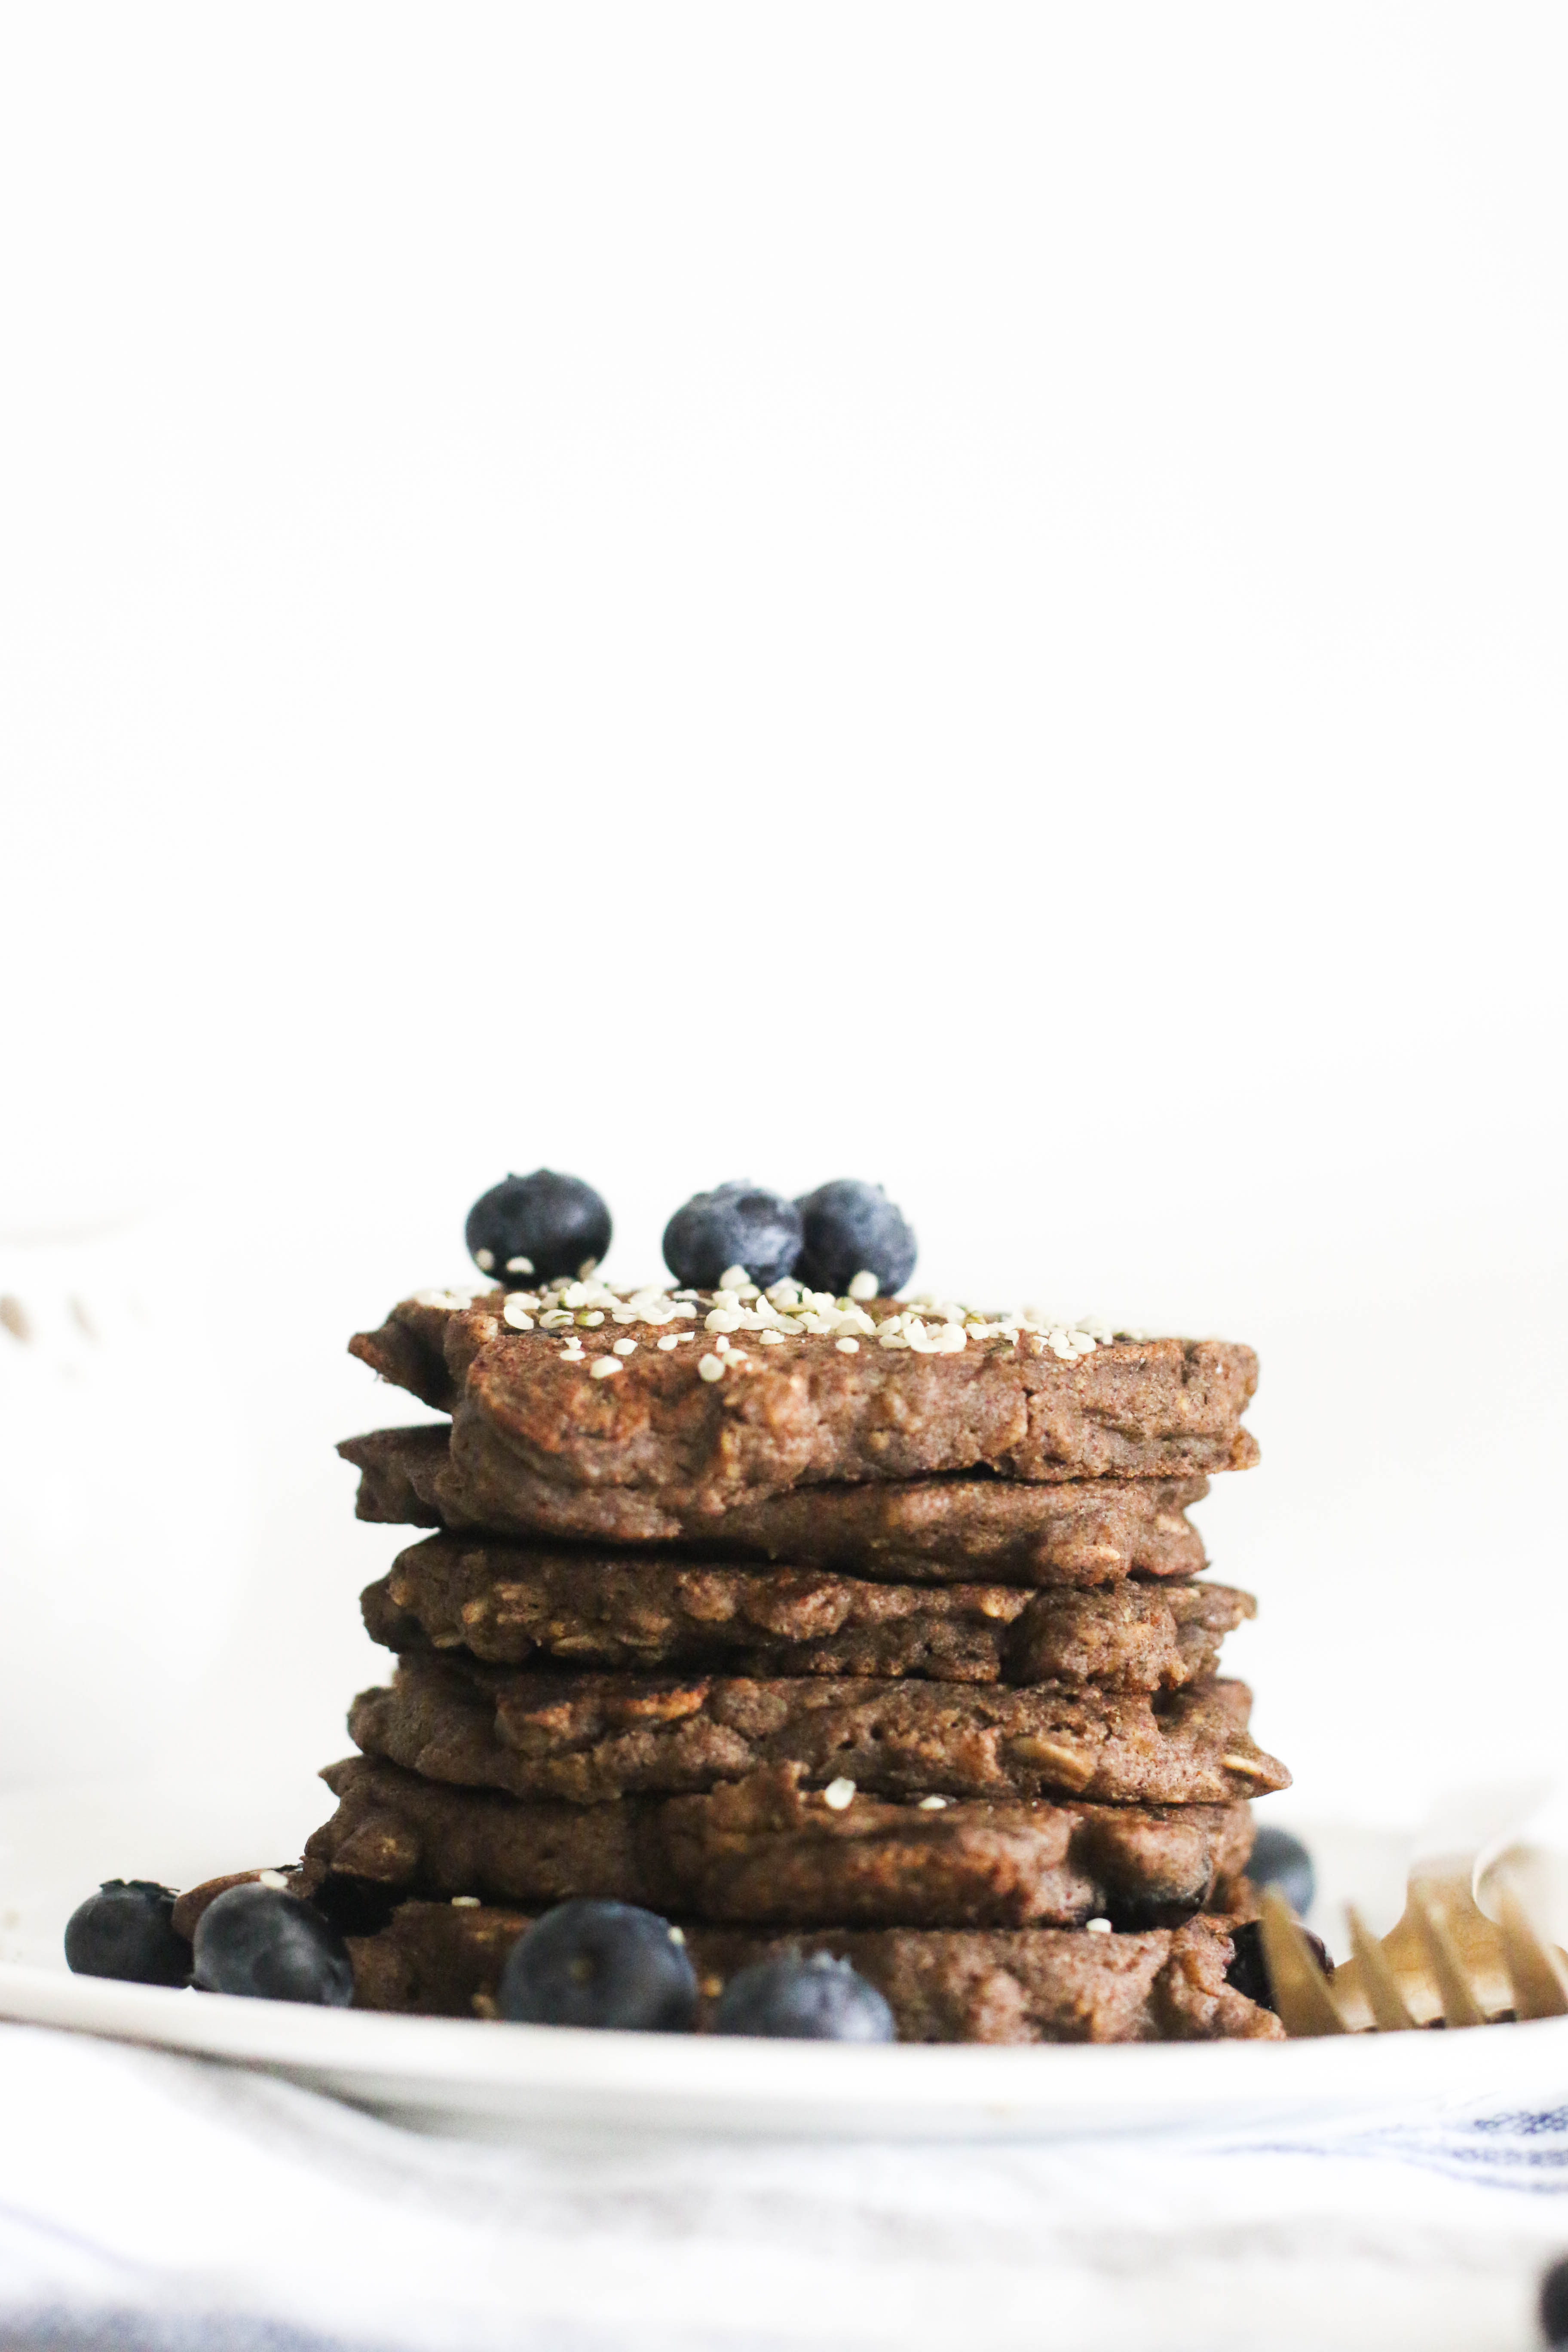 These blueberry buckwheat oatmeal pancakes are vegan, gluten free, refined sugar free, and delicious! Made with minimal ingredients and filled with flavor, they're a greatweekend brunch dish.